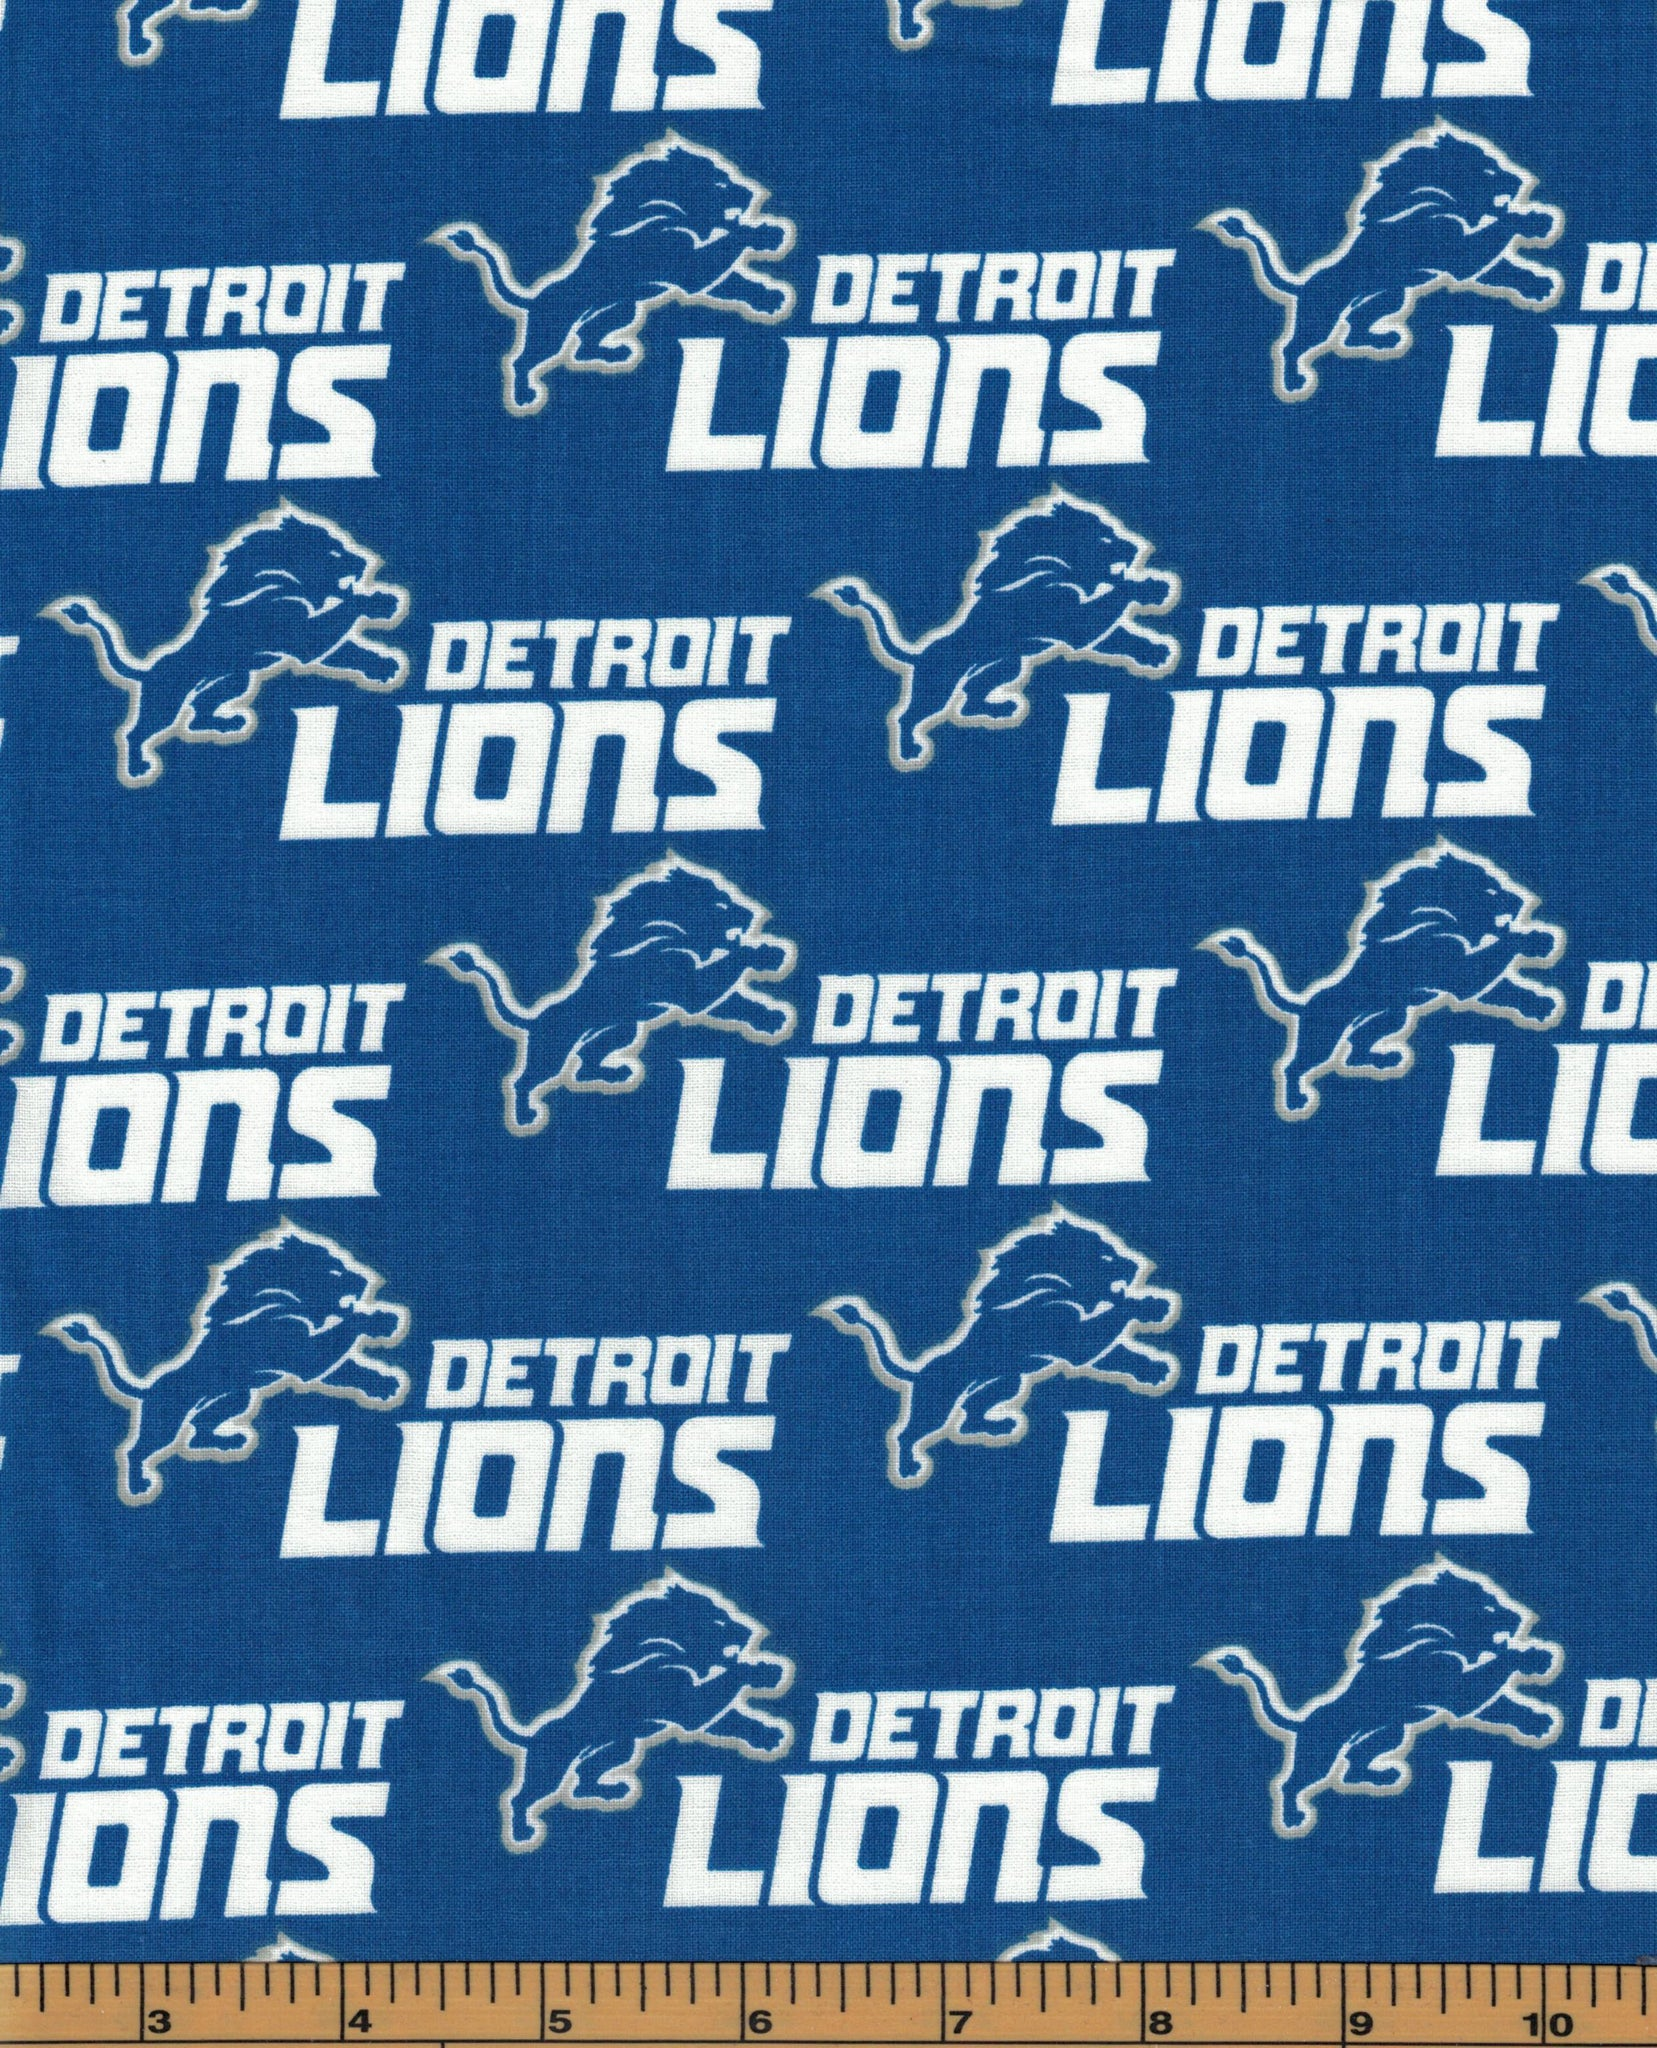 Detroit Lions Fabric- NFL - 100% Cotton High Quality Fabric- by Fabric Traditions